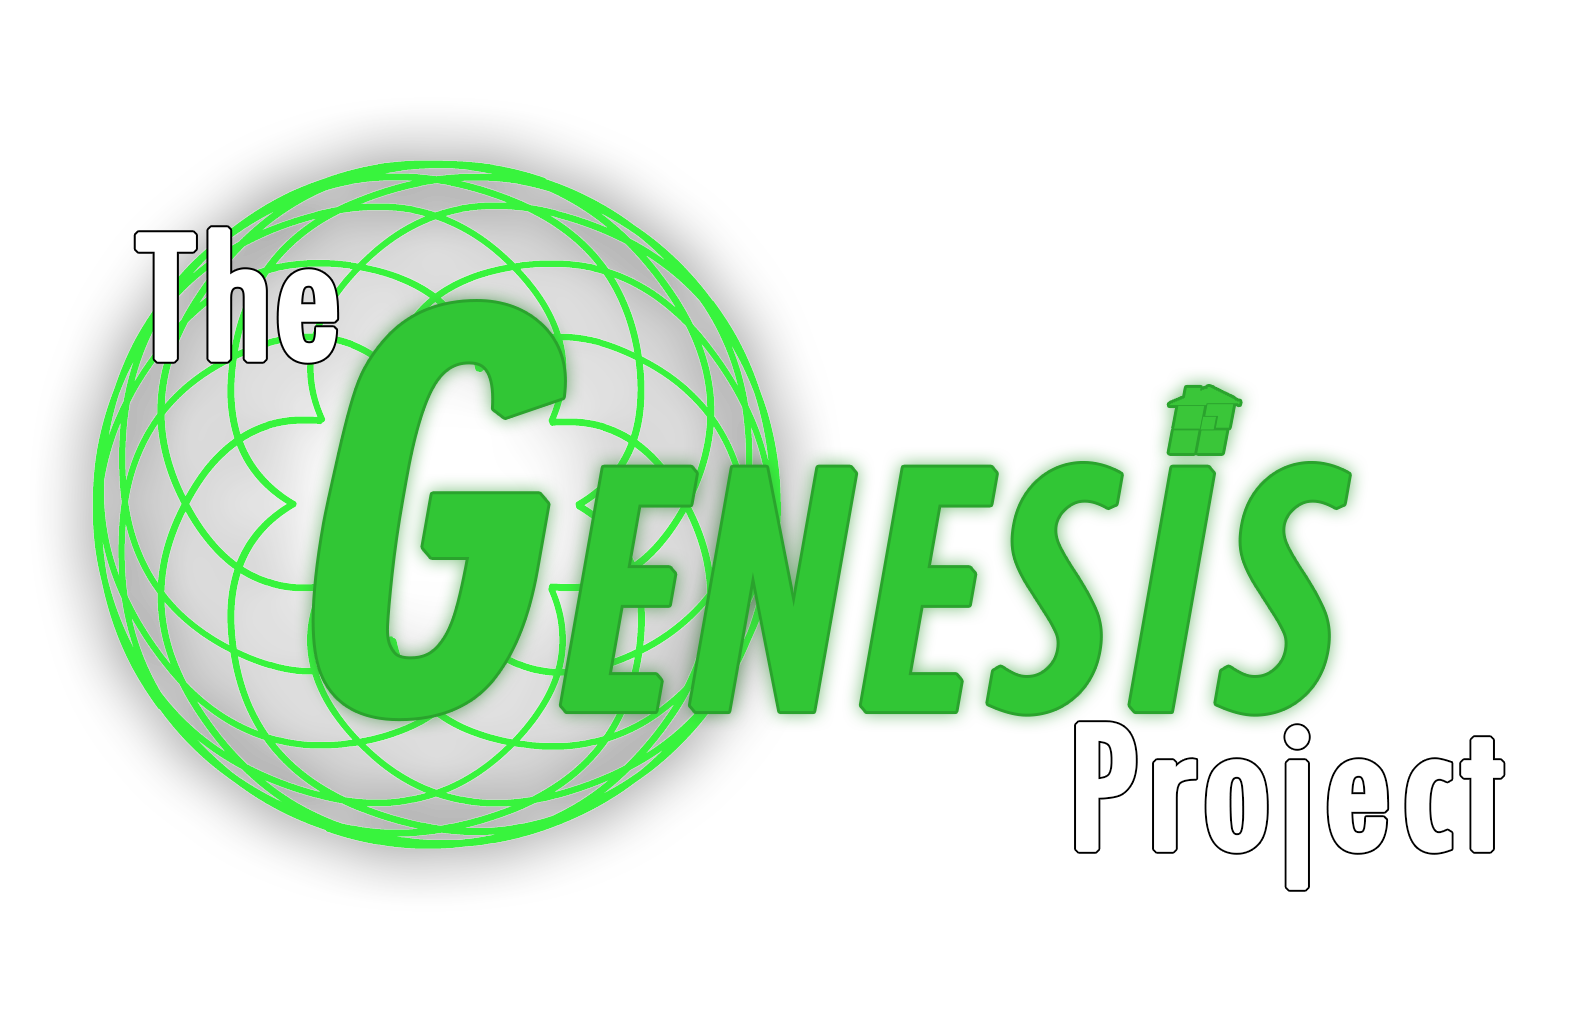 The Genesis Project logo.